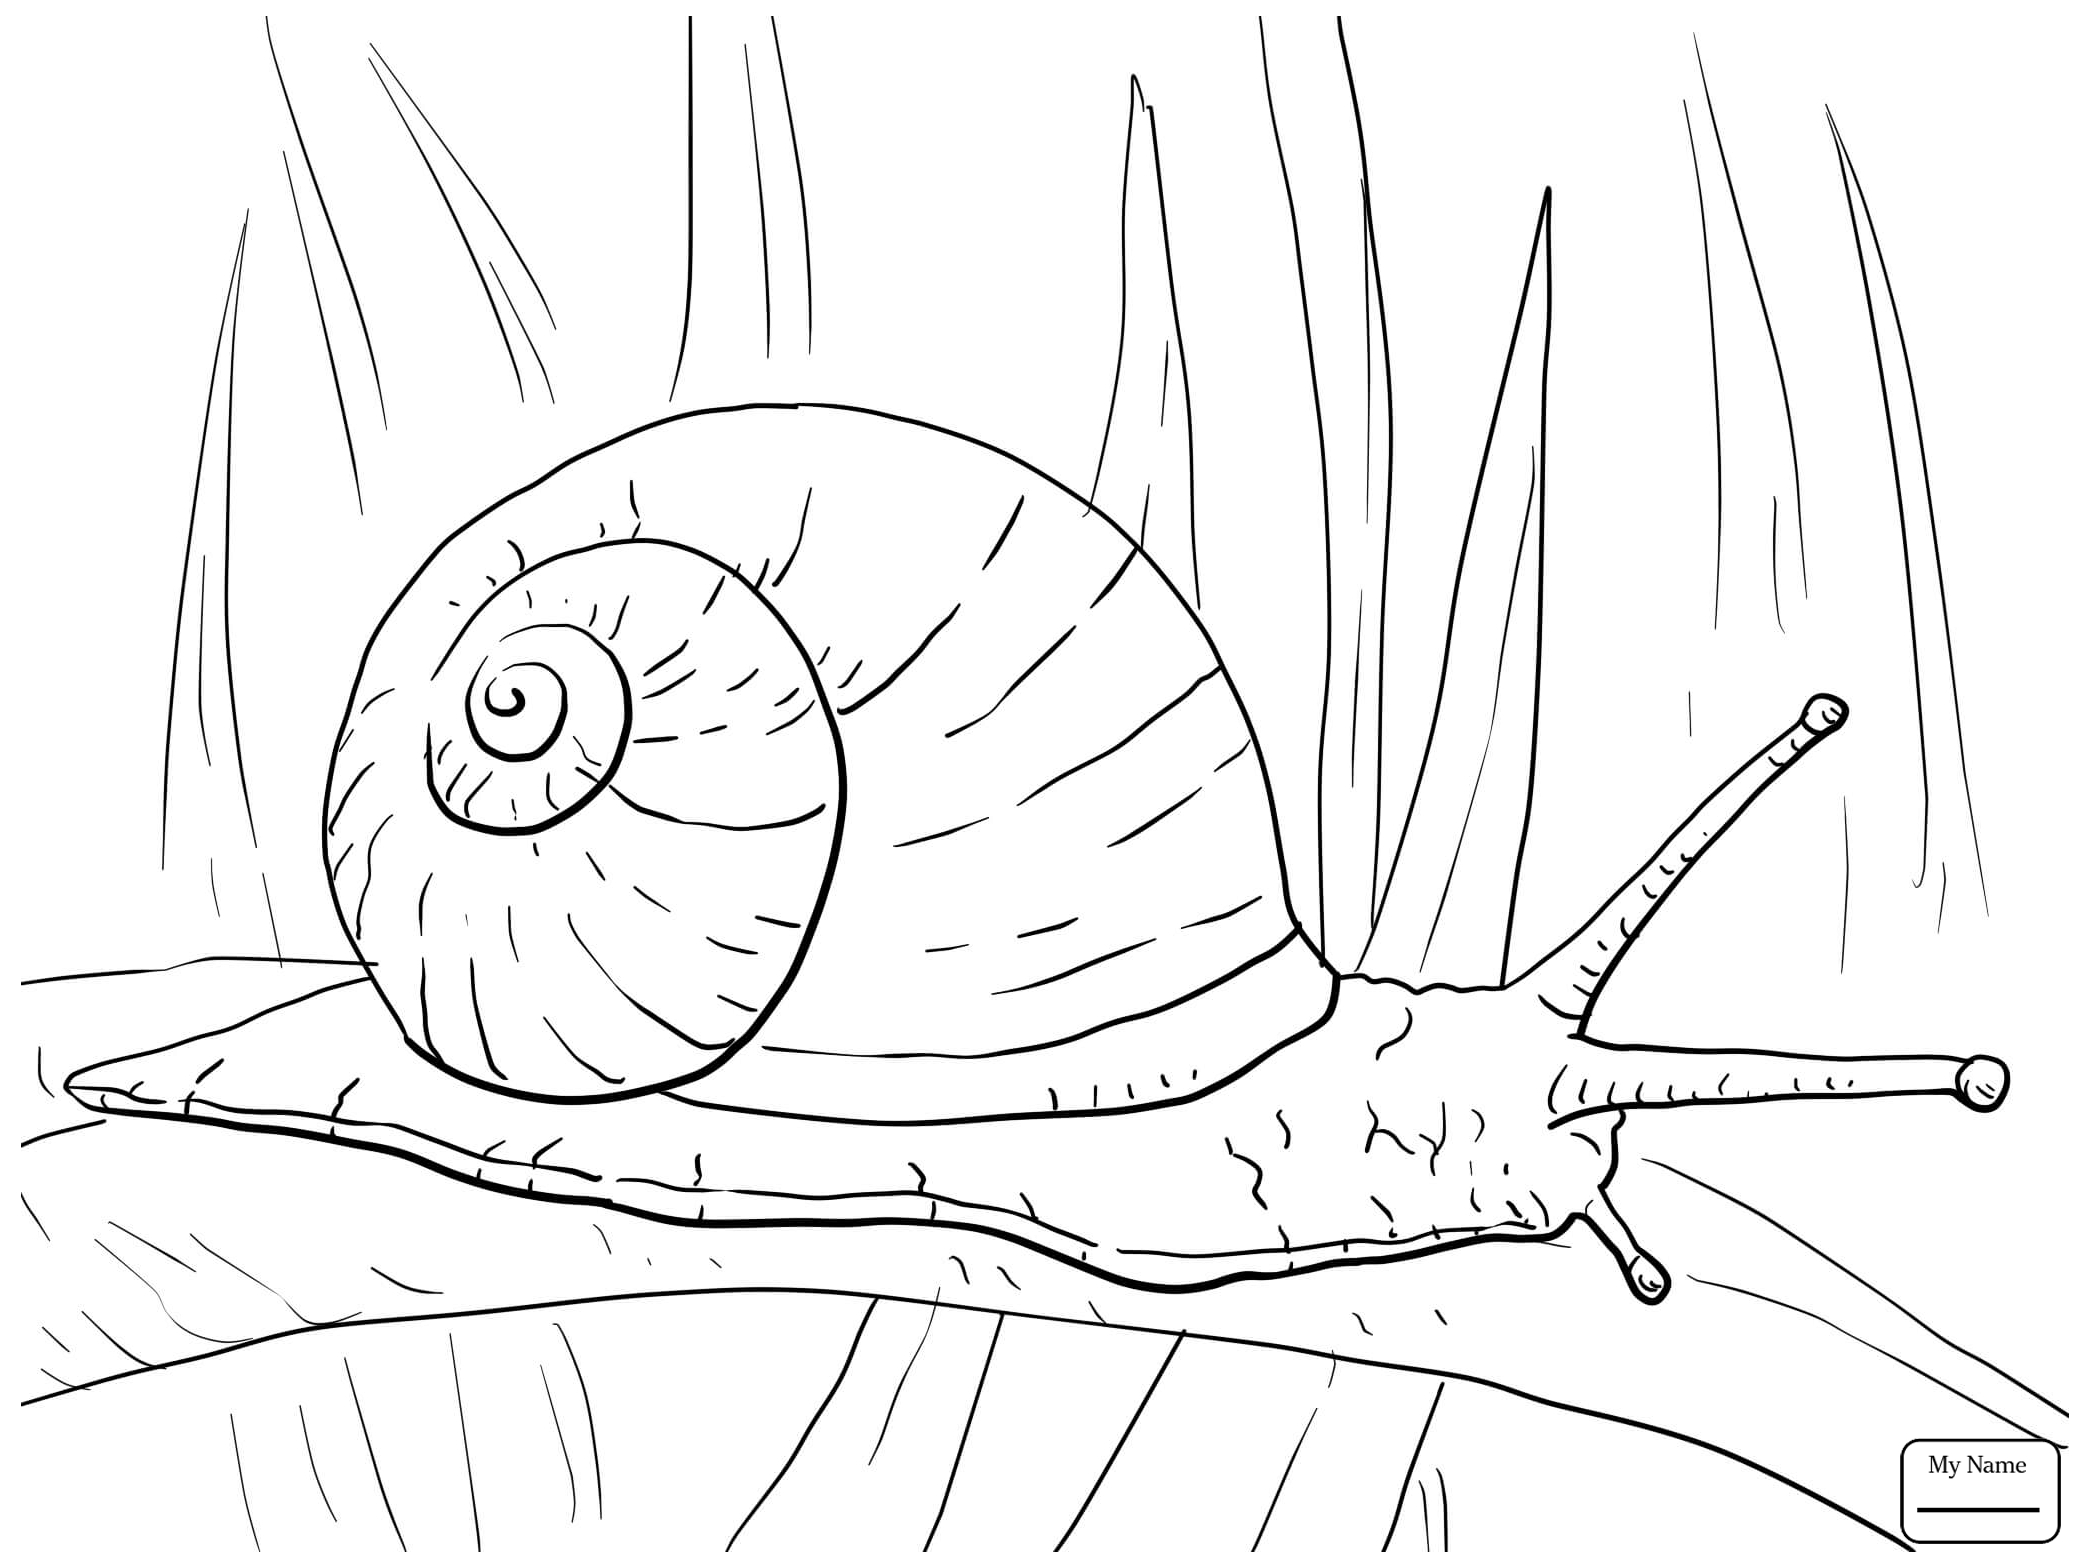 Snail Line Drawing at GetDrawings.com | Free for personal use Snail ...